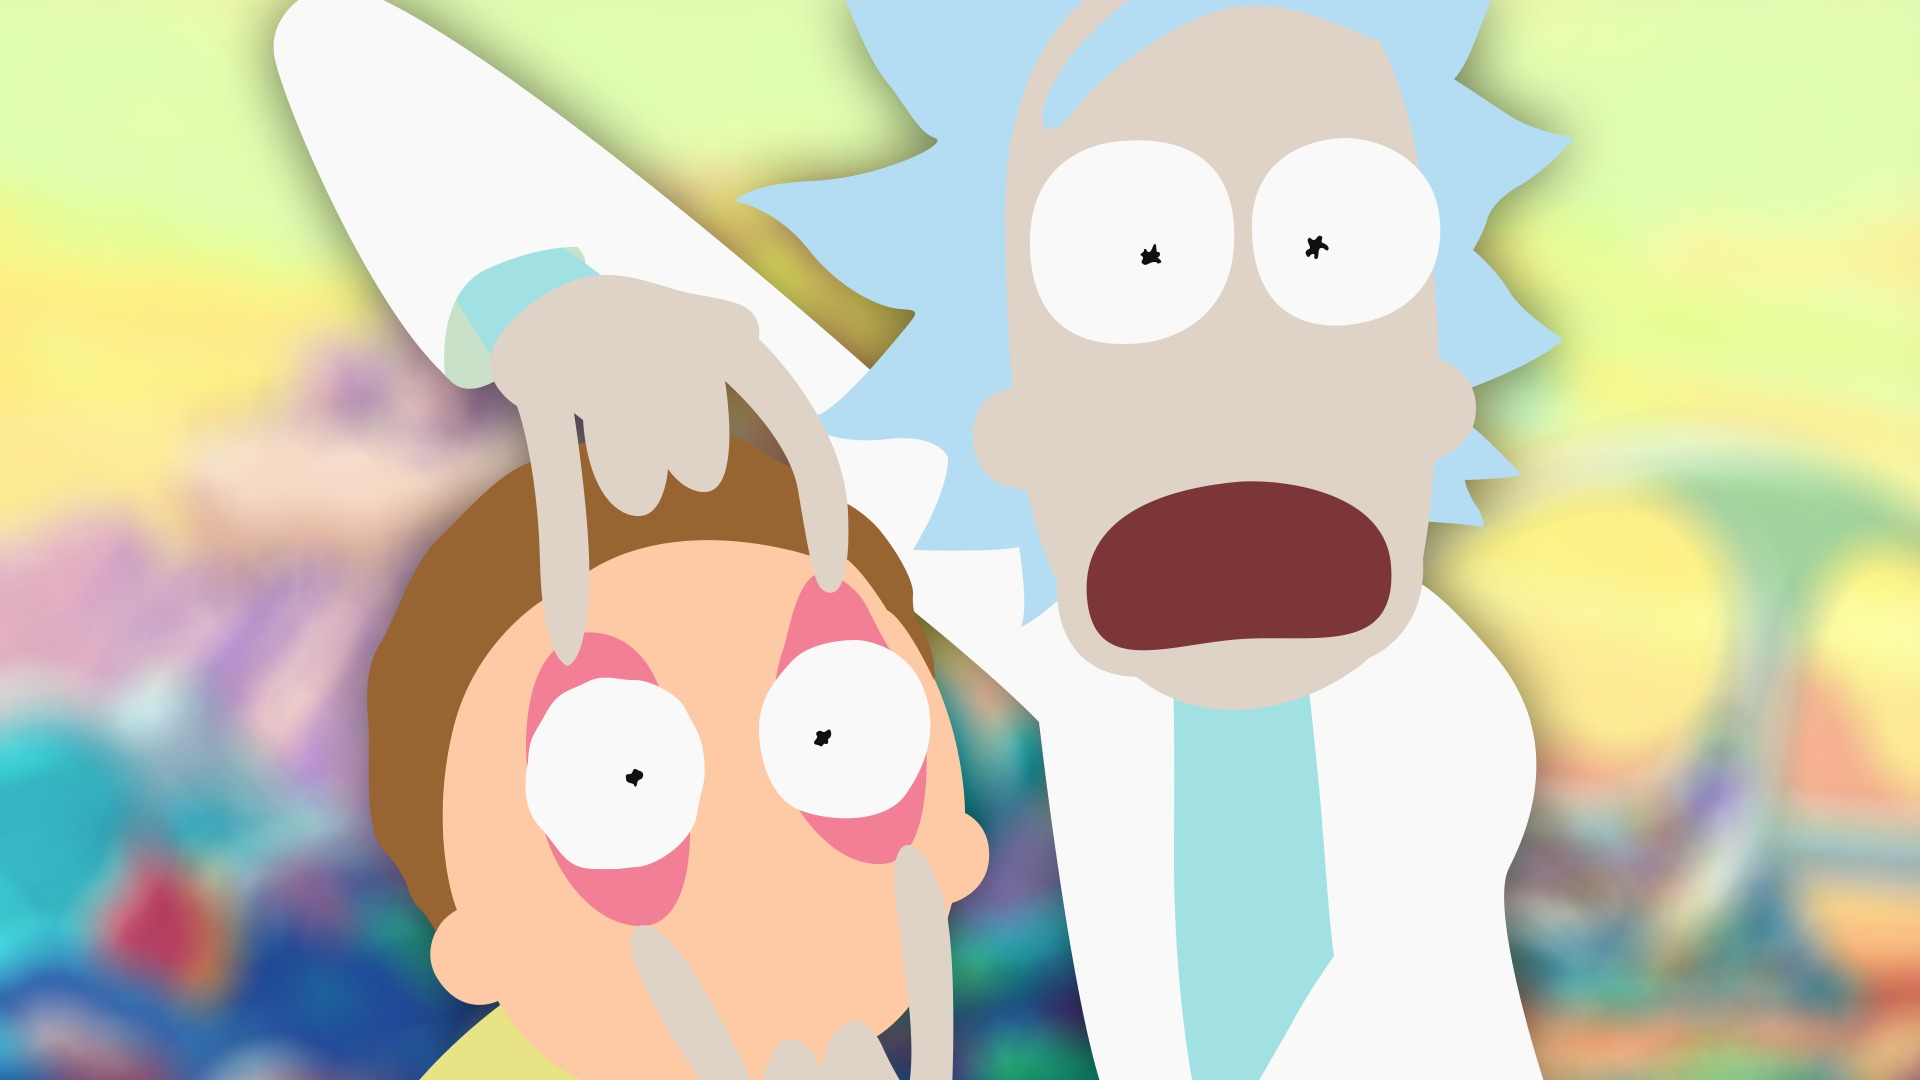 Rick And Morty Wallpaper Iphone Rick And Morty Simplistic Wallpapers